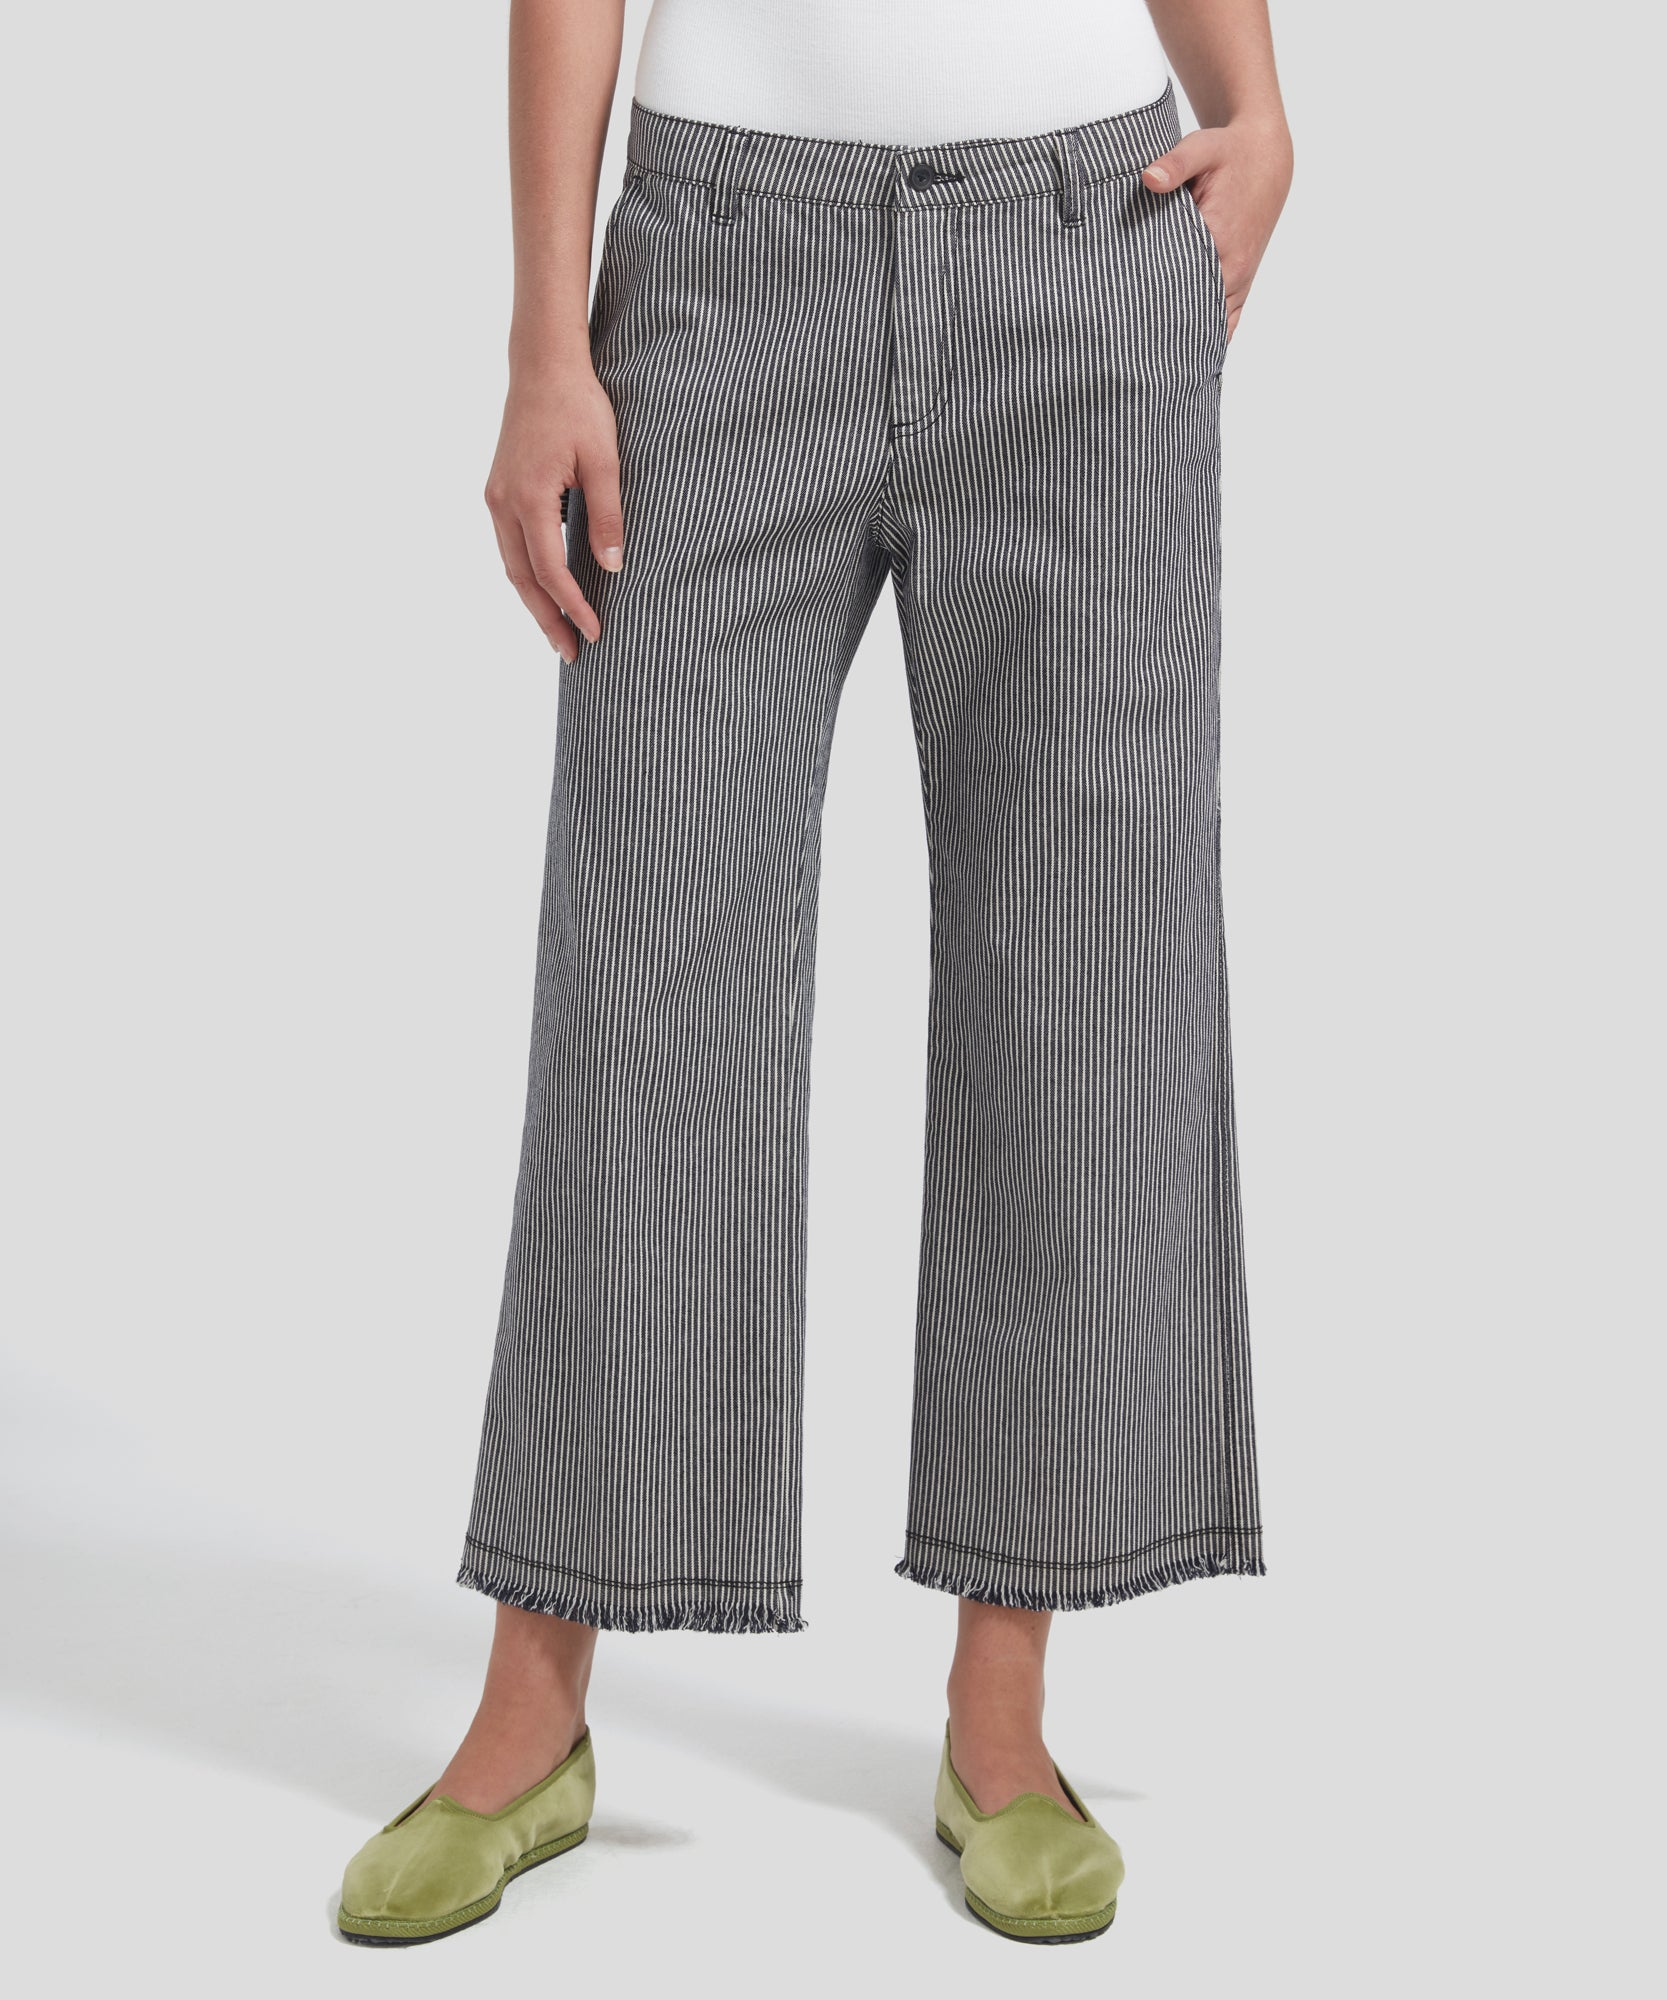 ATM Railroad Stripe Pants